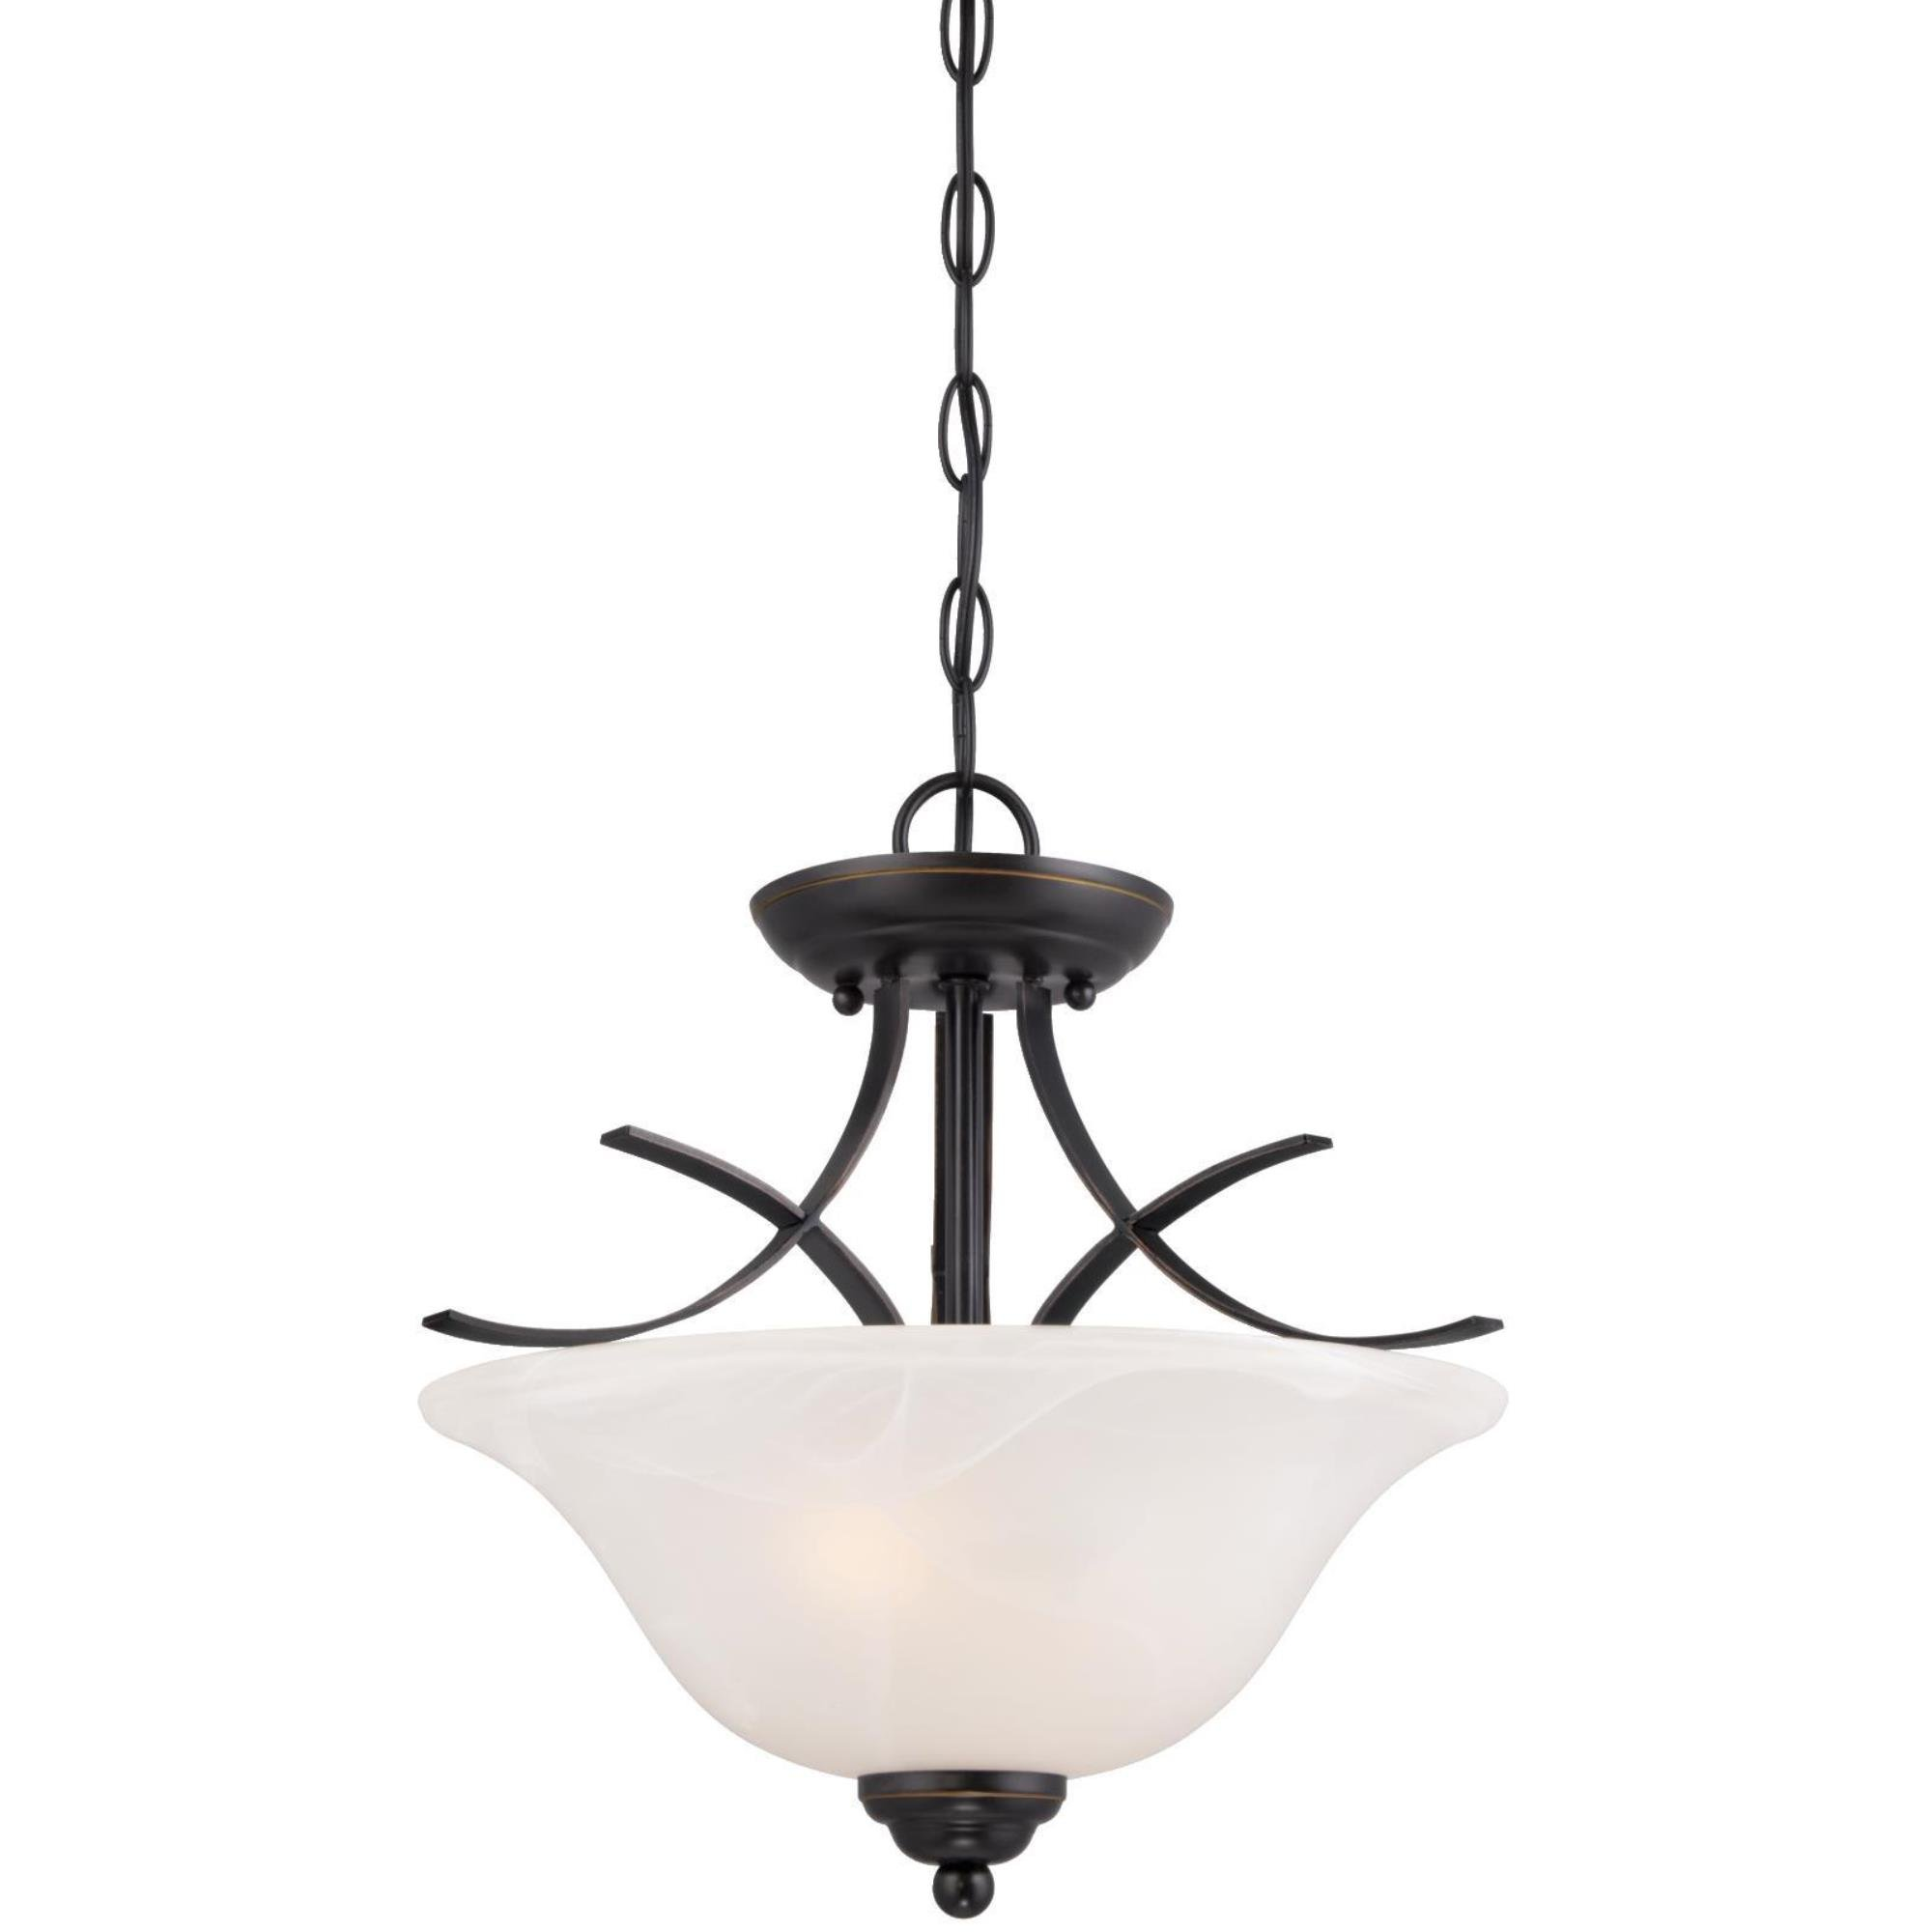 Westinghouse 6340300 Pacific Falls Two-Light Indoor Convertible Pendant/Semi-Flush Ceiling Fixture, Amber Bronze Finish with White Alabaster Glass